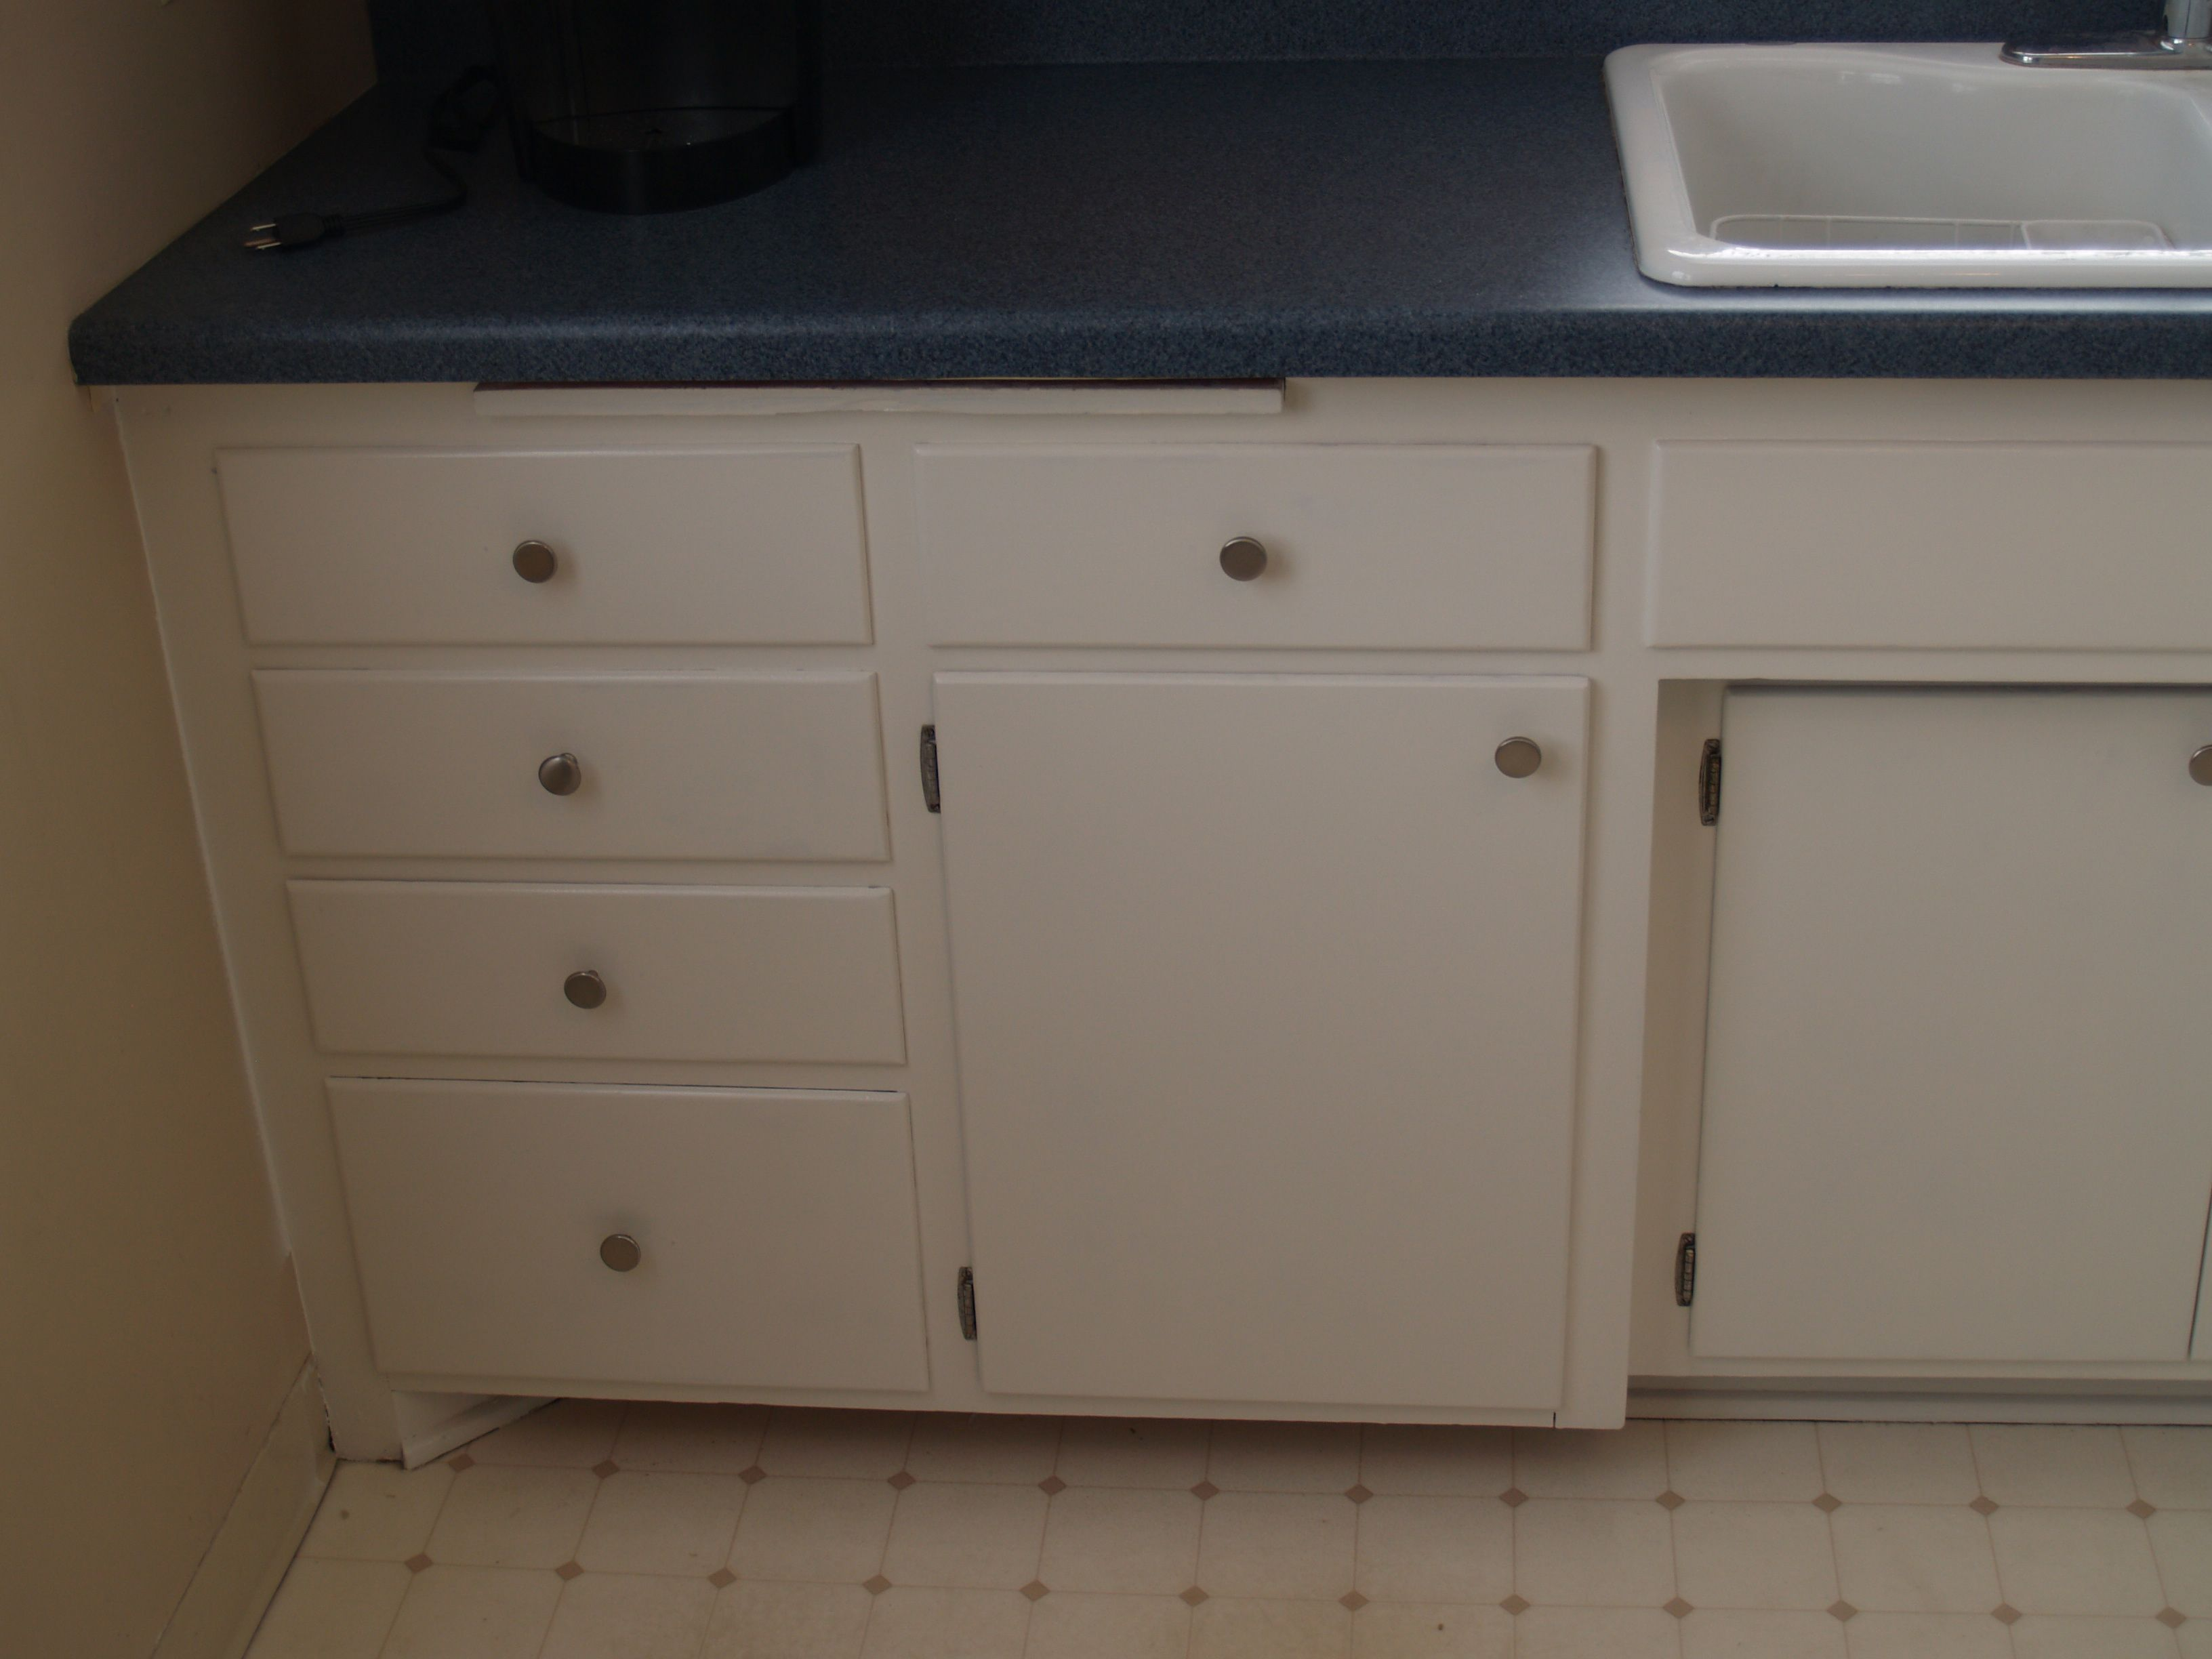 painting kitchen cupboards the right way kitchen reno ideas